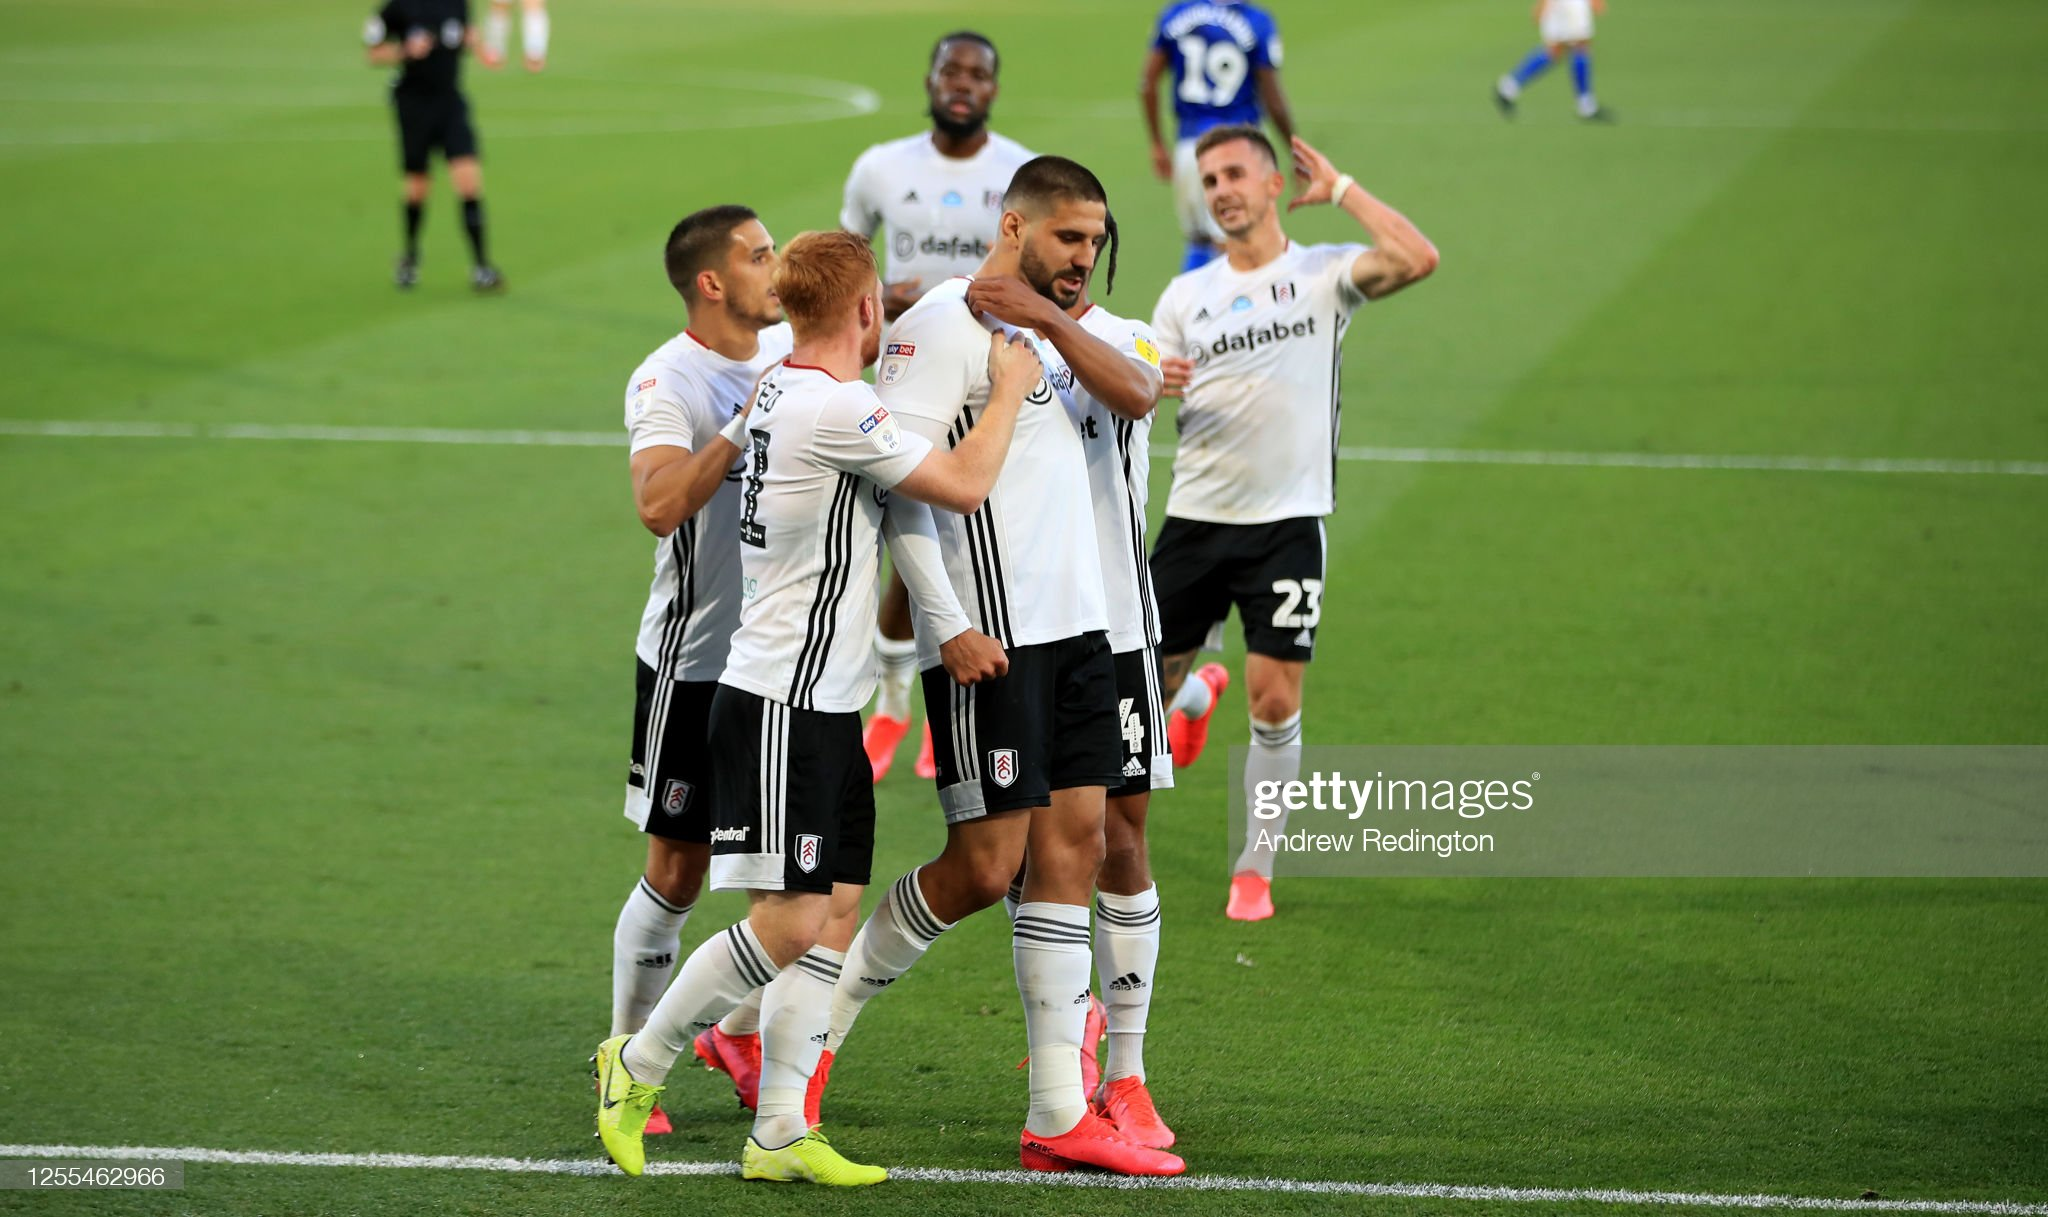 Fulham v Cardiff City - Sky Bet Championship : News Photo